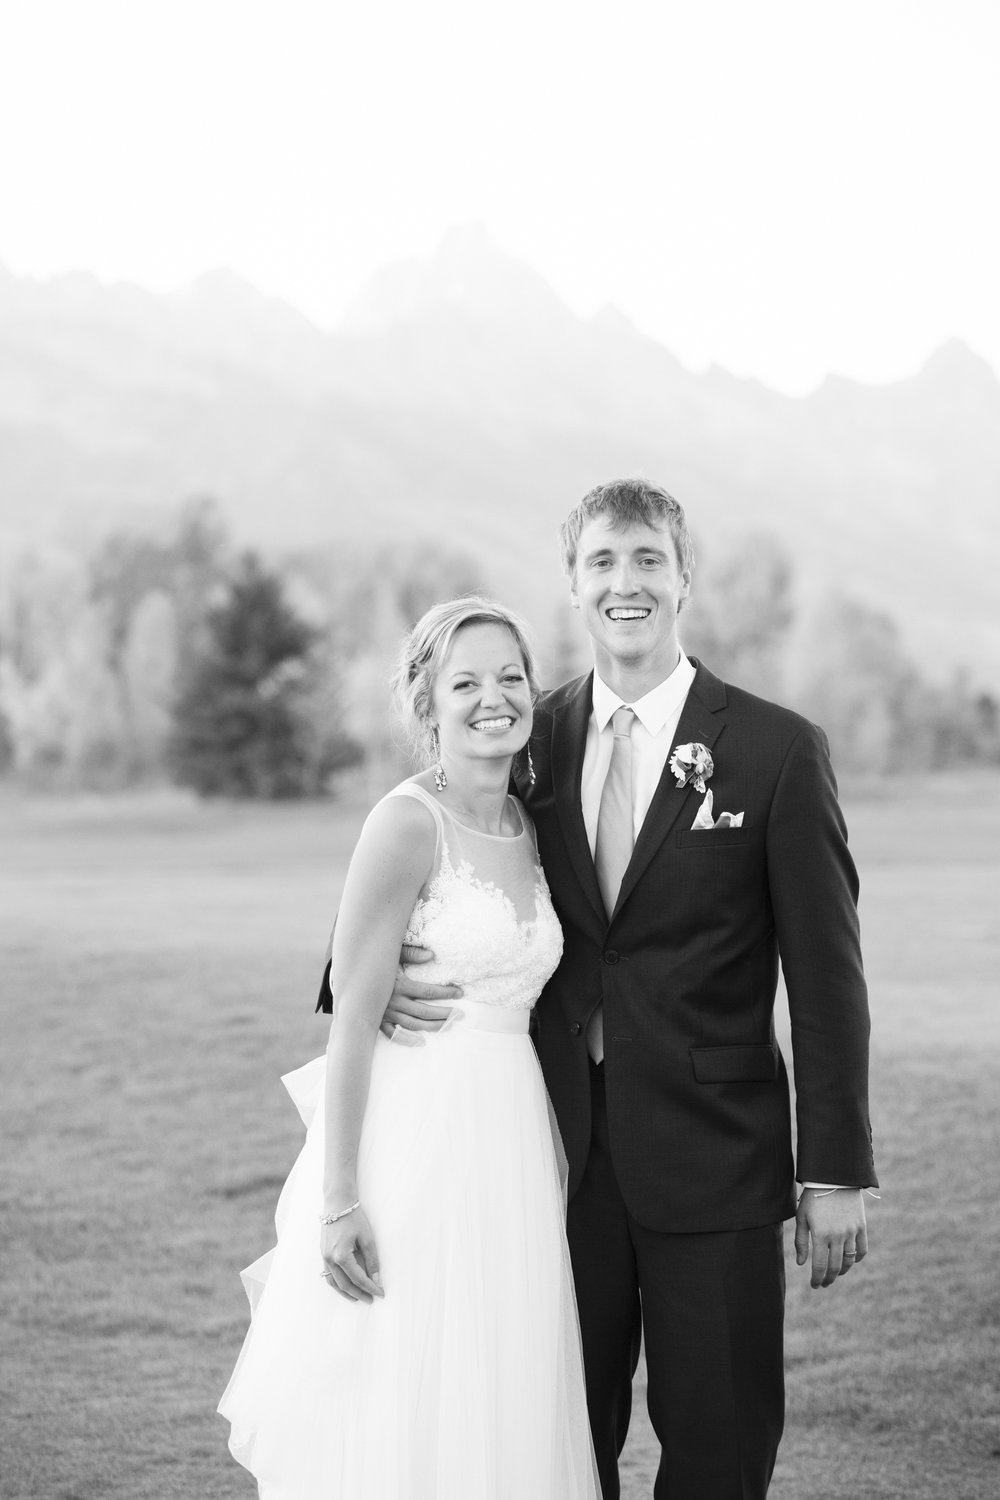 Millett Wedding Jackson Hole 2104_0428.JPG